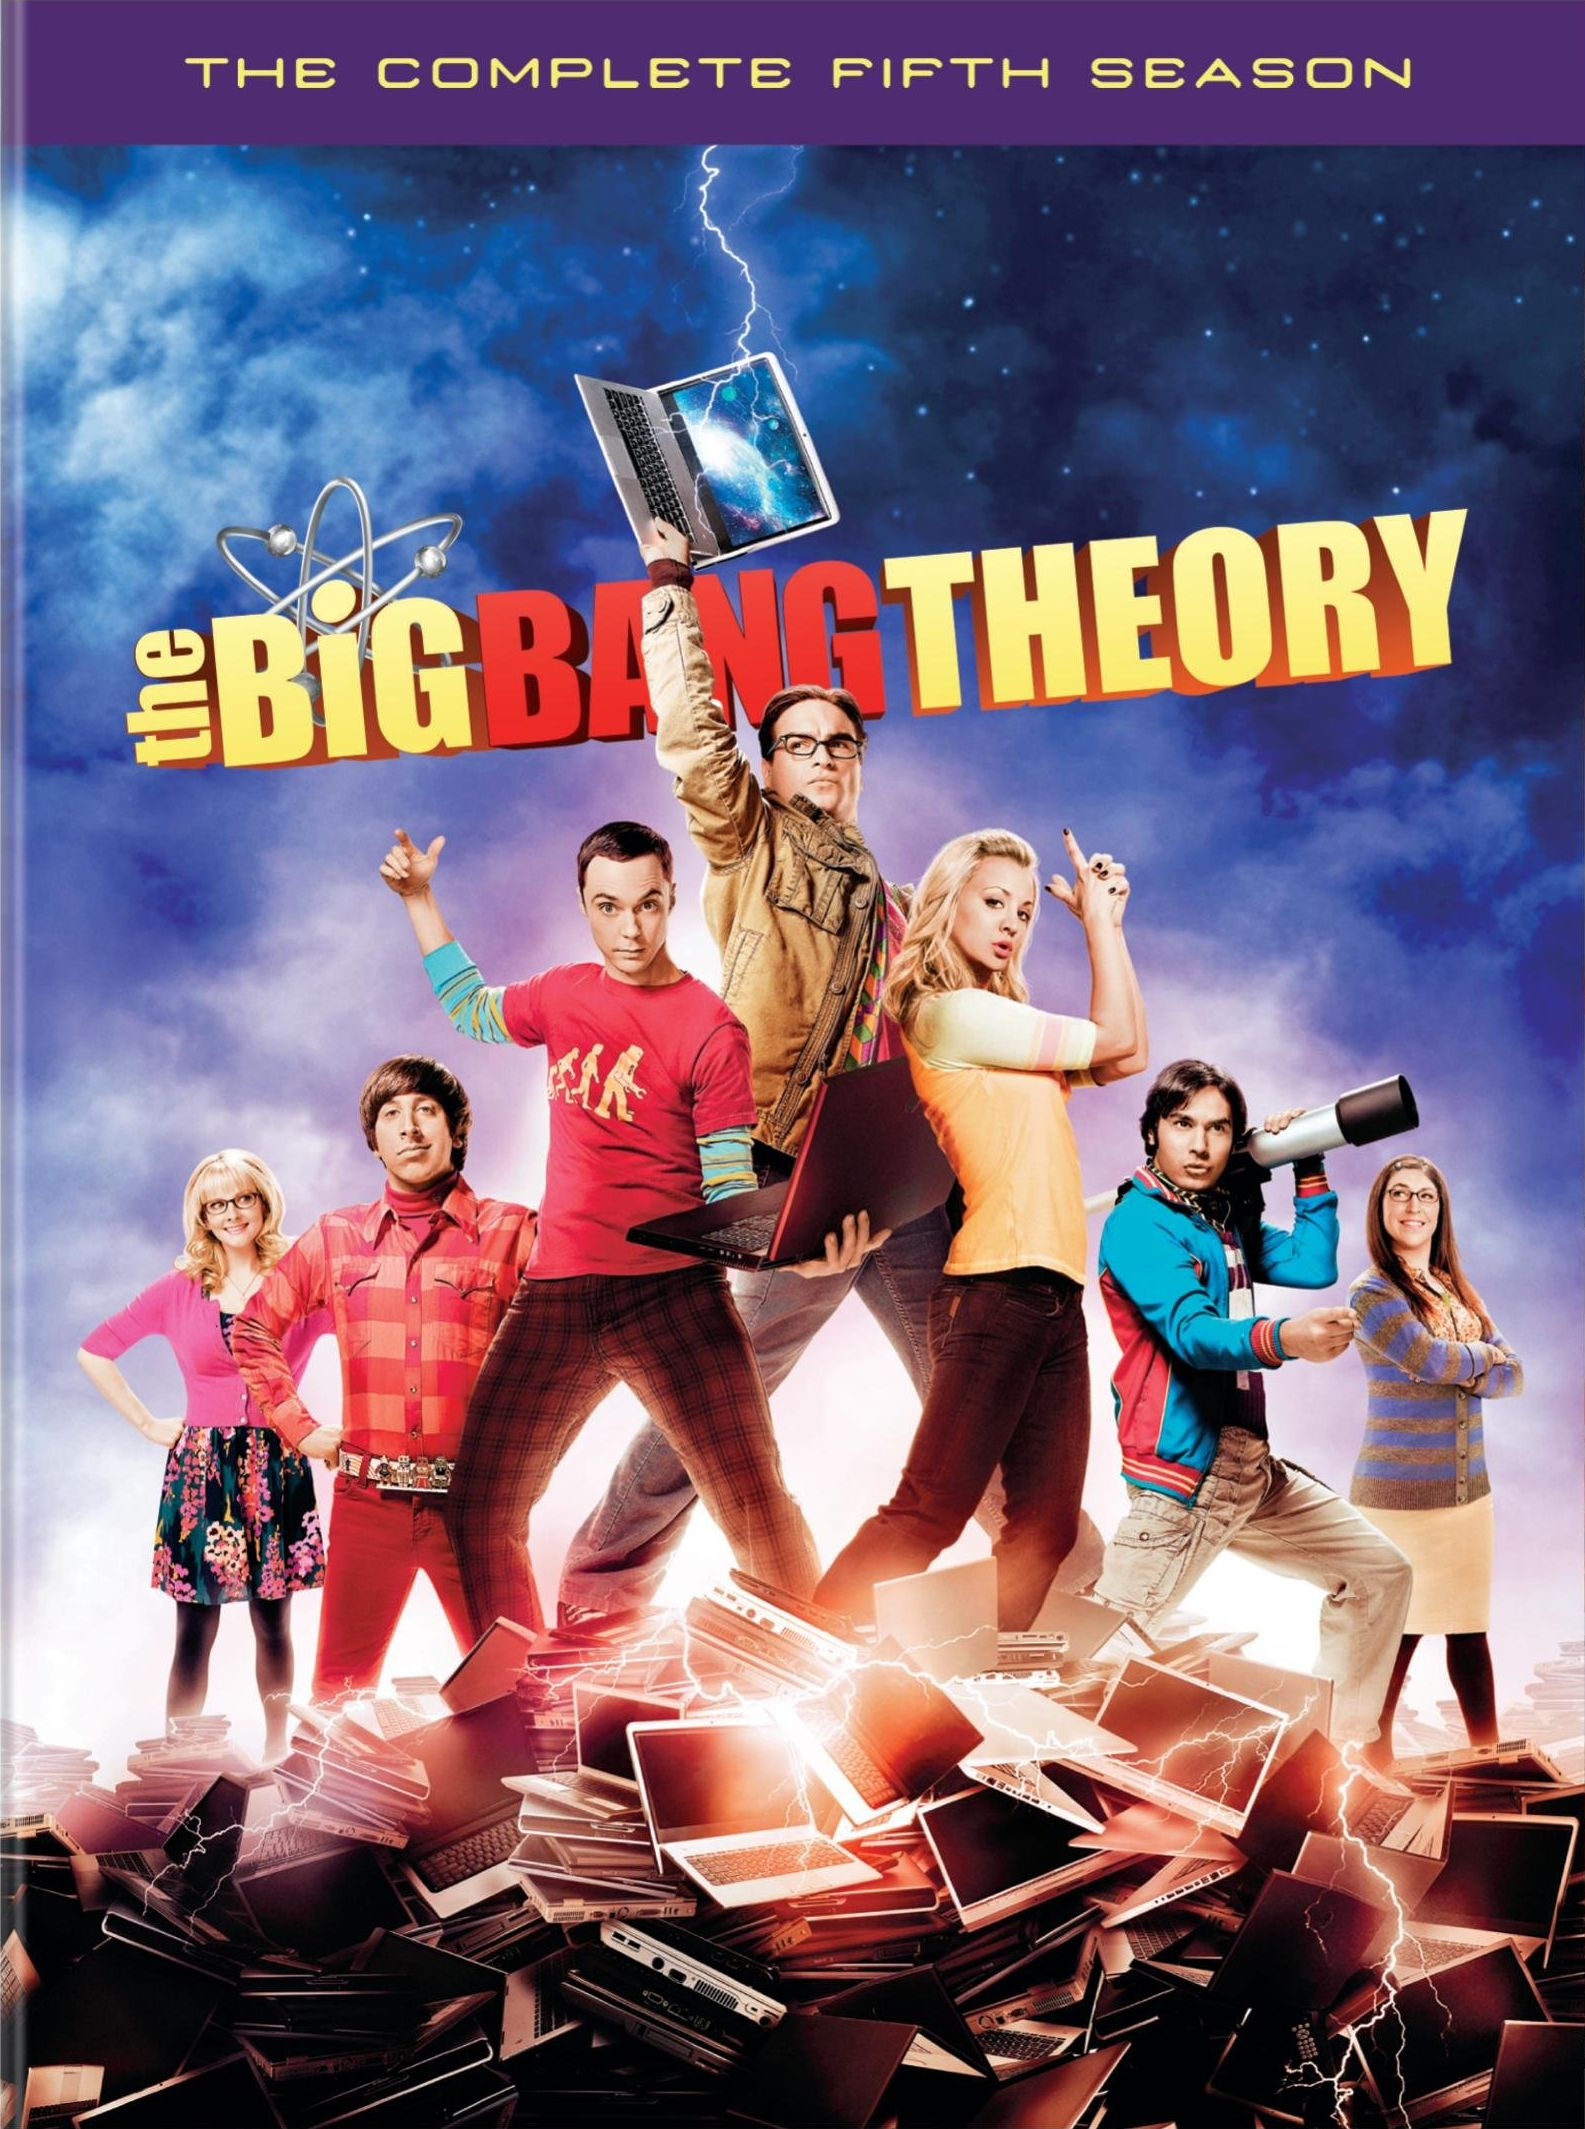 The Big Bagn Theory The Big Bang Theory Dvd Release Date